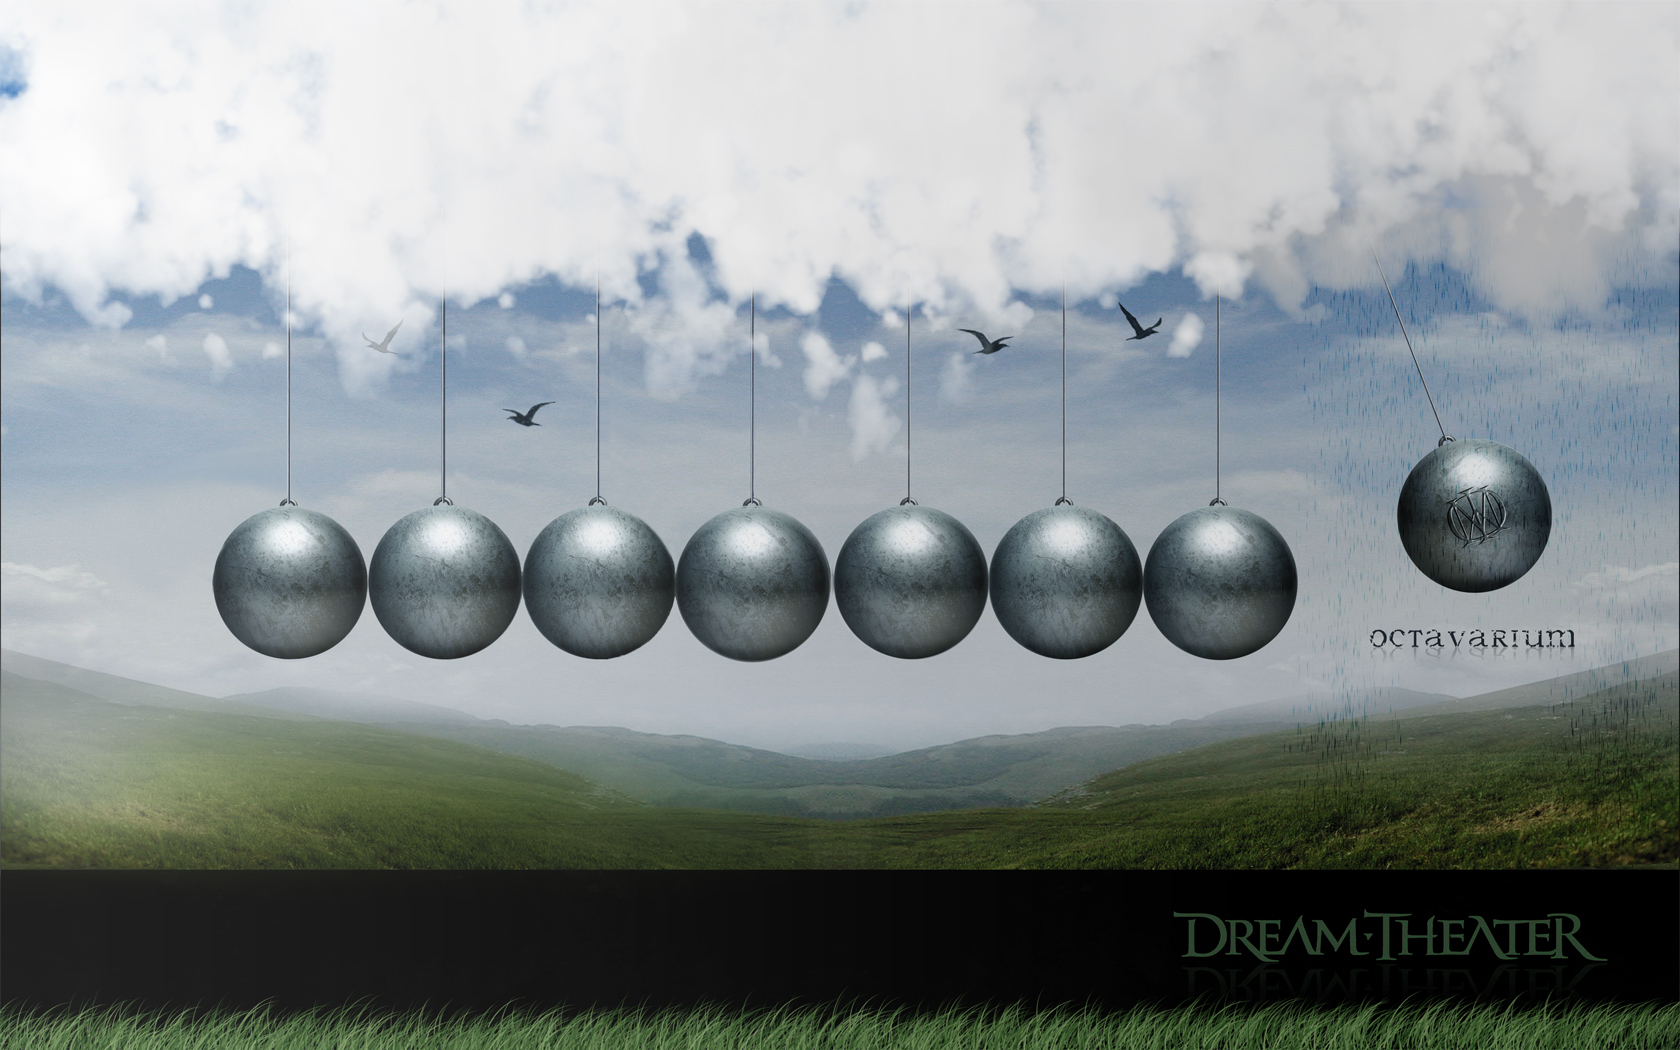 Dream Theater Wallpaper 1680x1050 Dream Theater Newtons Cradle 1680x1050